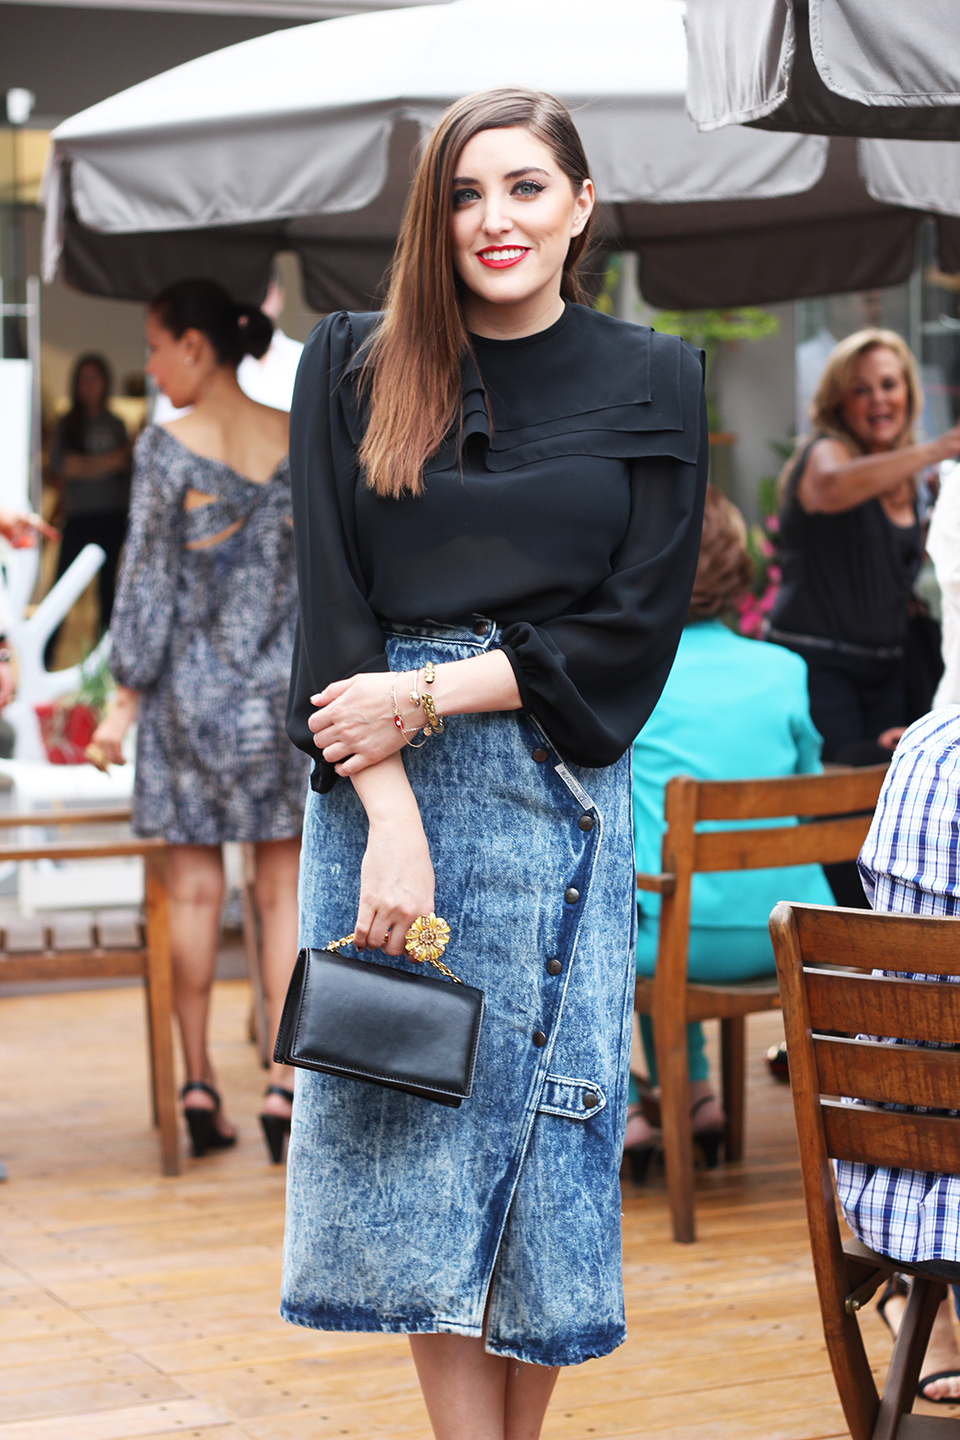 my philosophie, sofia lascurain, fashion blogger, style, hanger concept store, special guest, denim skirt, party